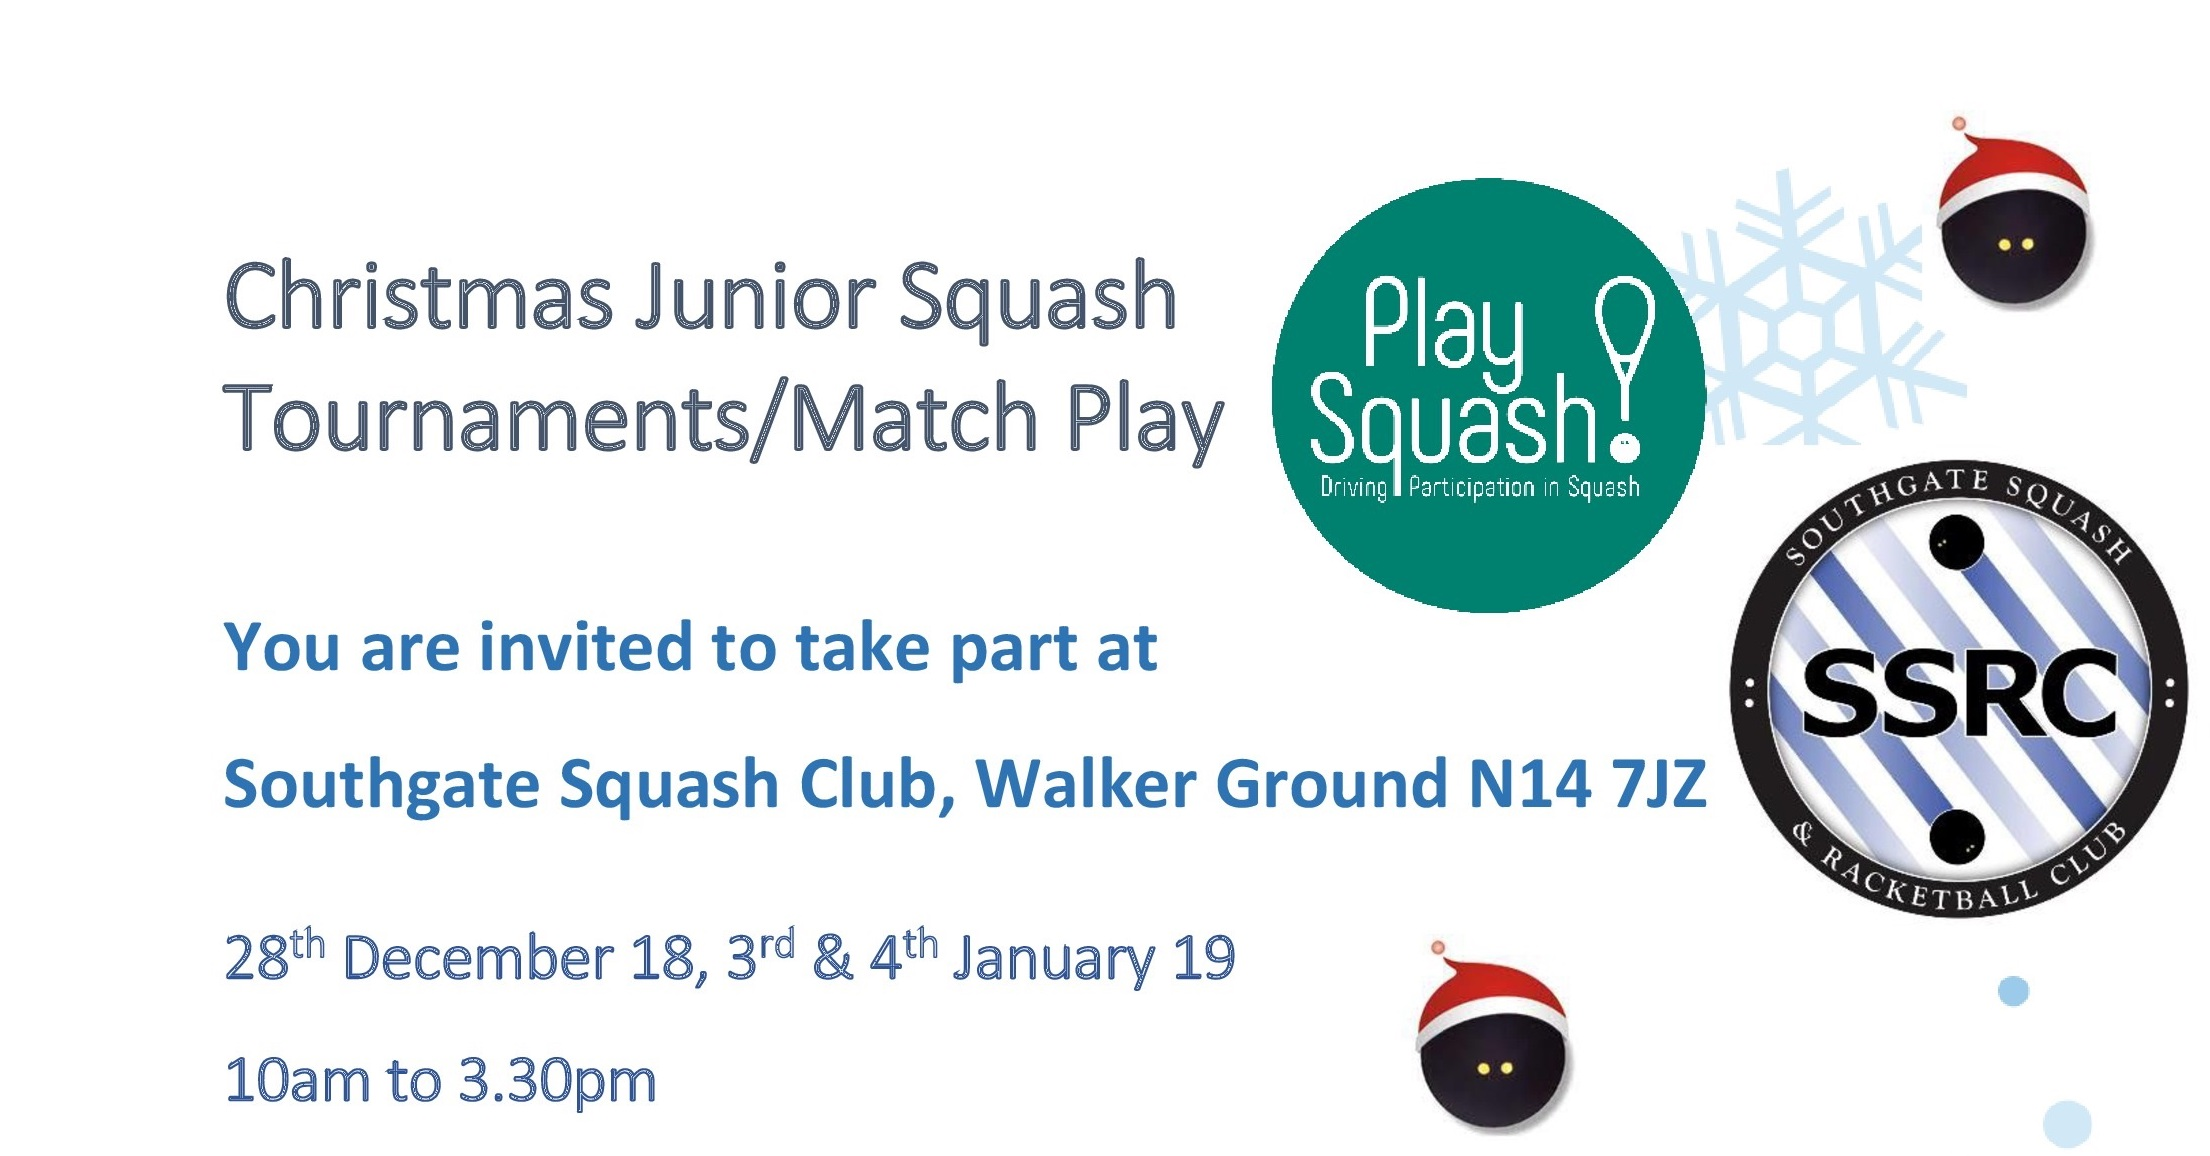 Christmas Junior Squash at Southgate